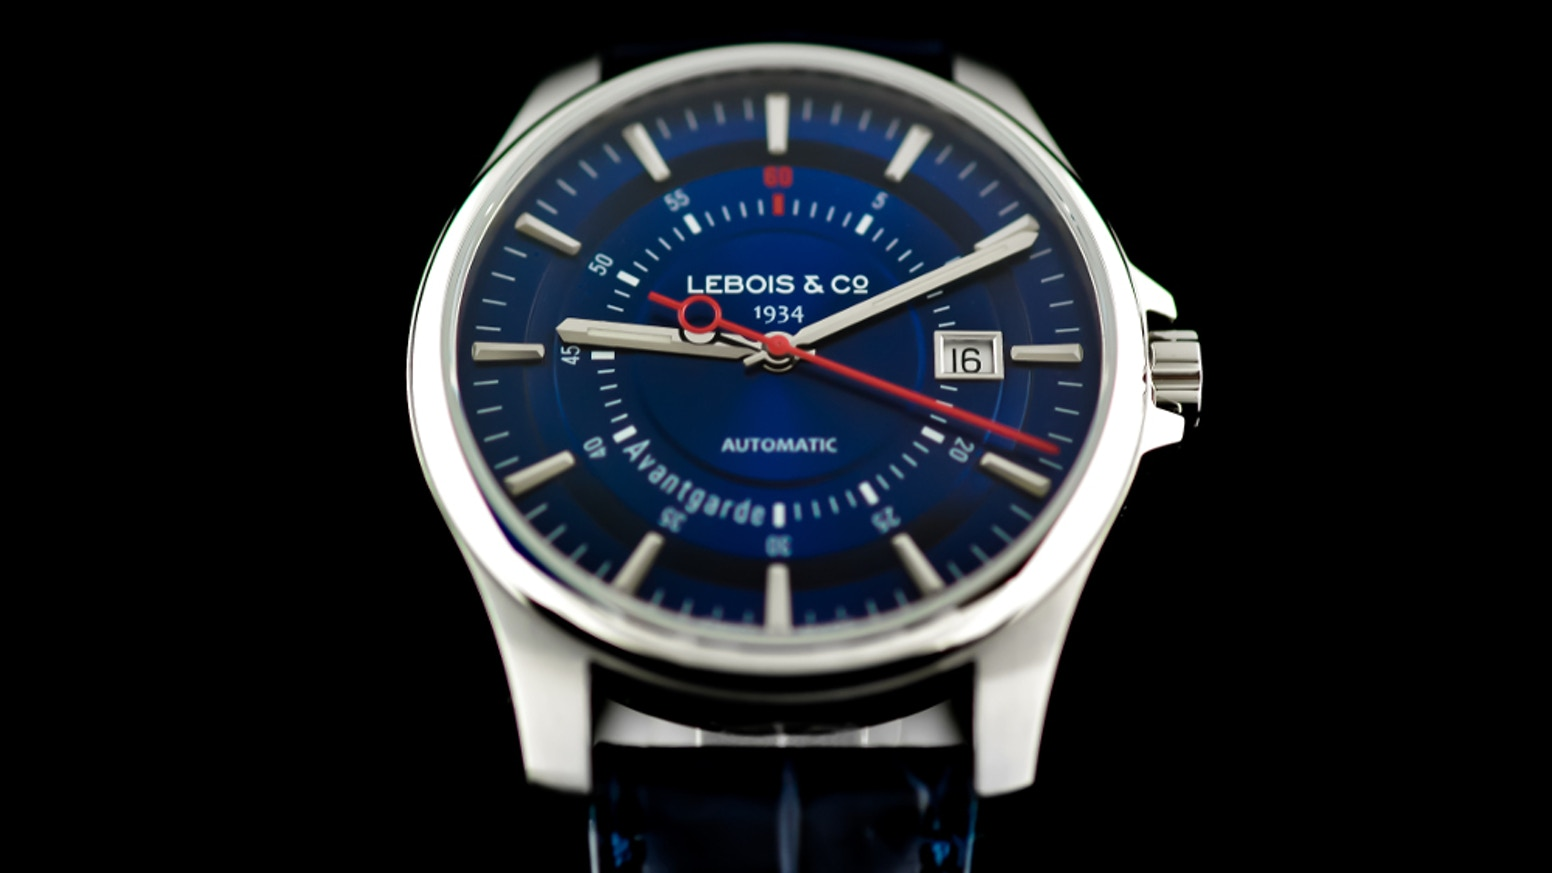 The Re-launch of 80 Year Old luxury watch brand Lebois & Co continues. Avantgarde Date - 2nd Re-launch Edition. Swiss Made, Automatic.